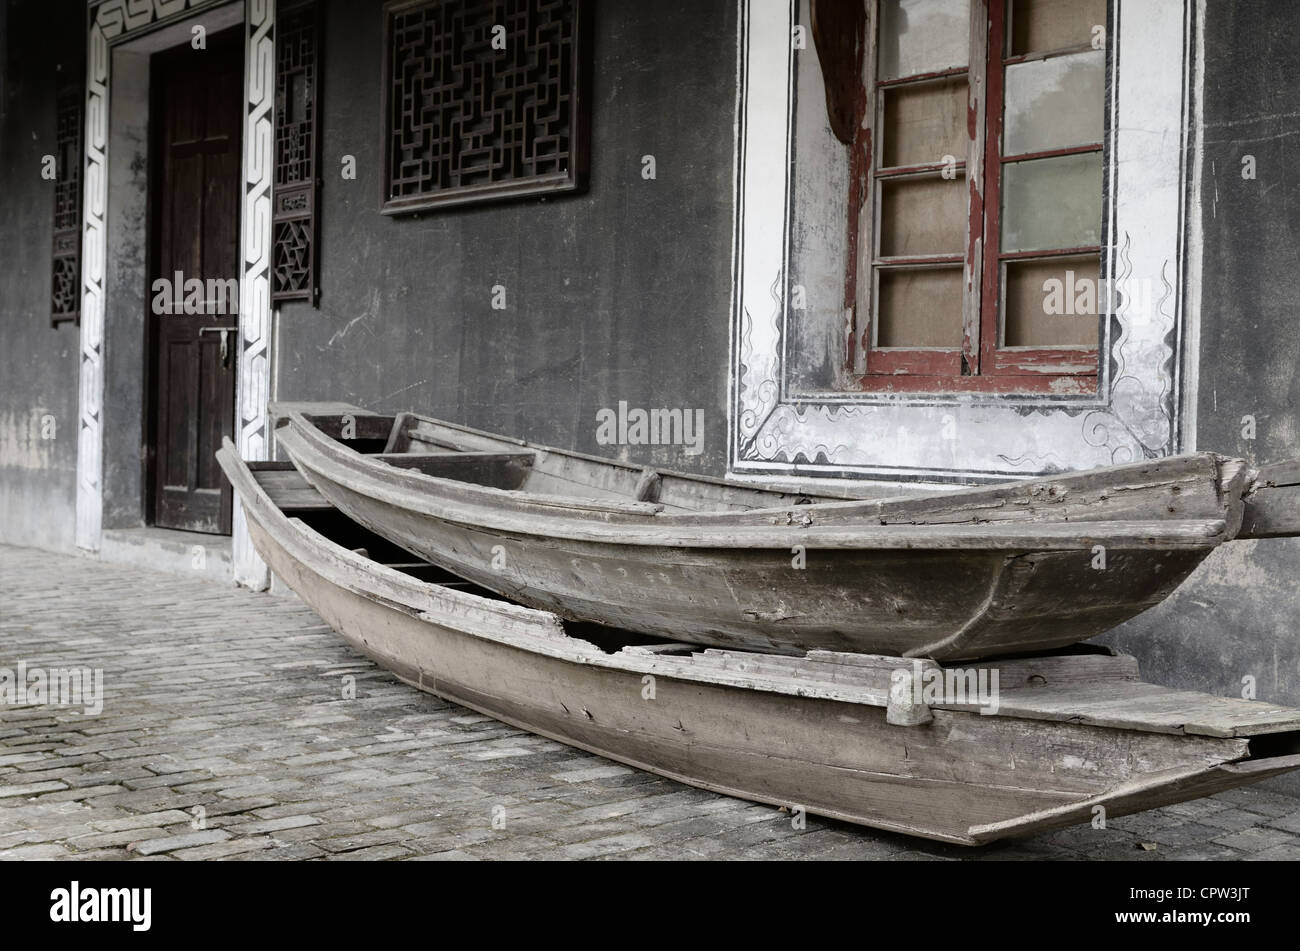 Abandoned Boats Immagini Abandoned Boats Fotos Stock Alamy